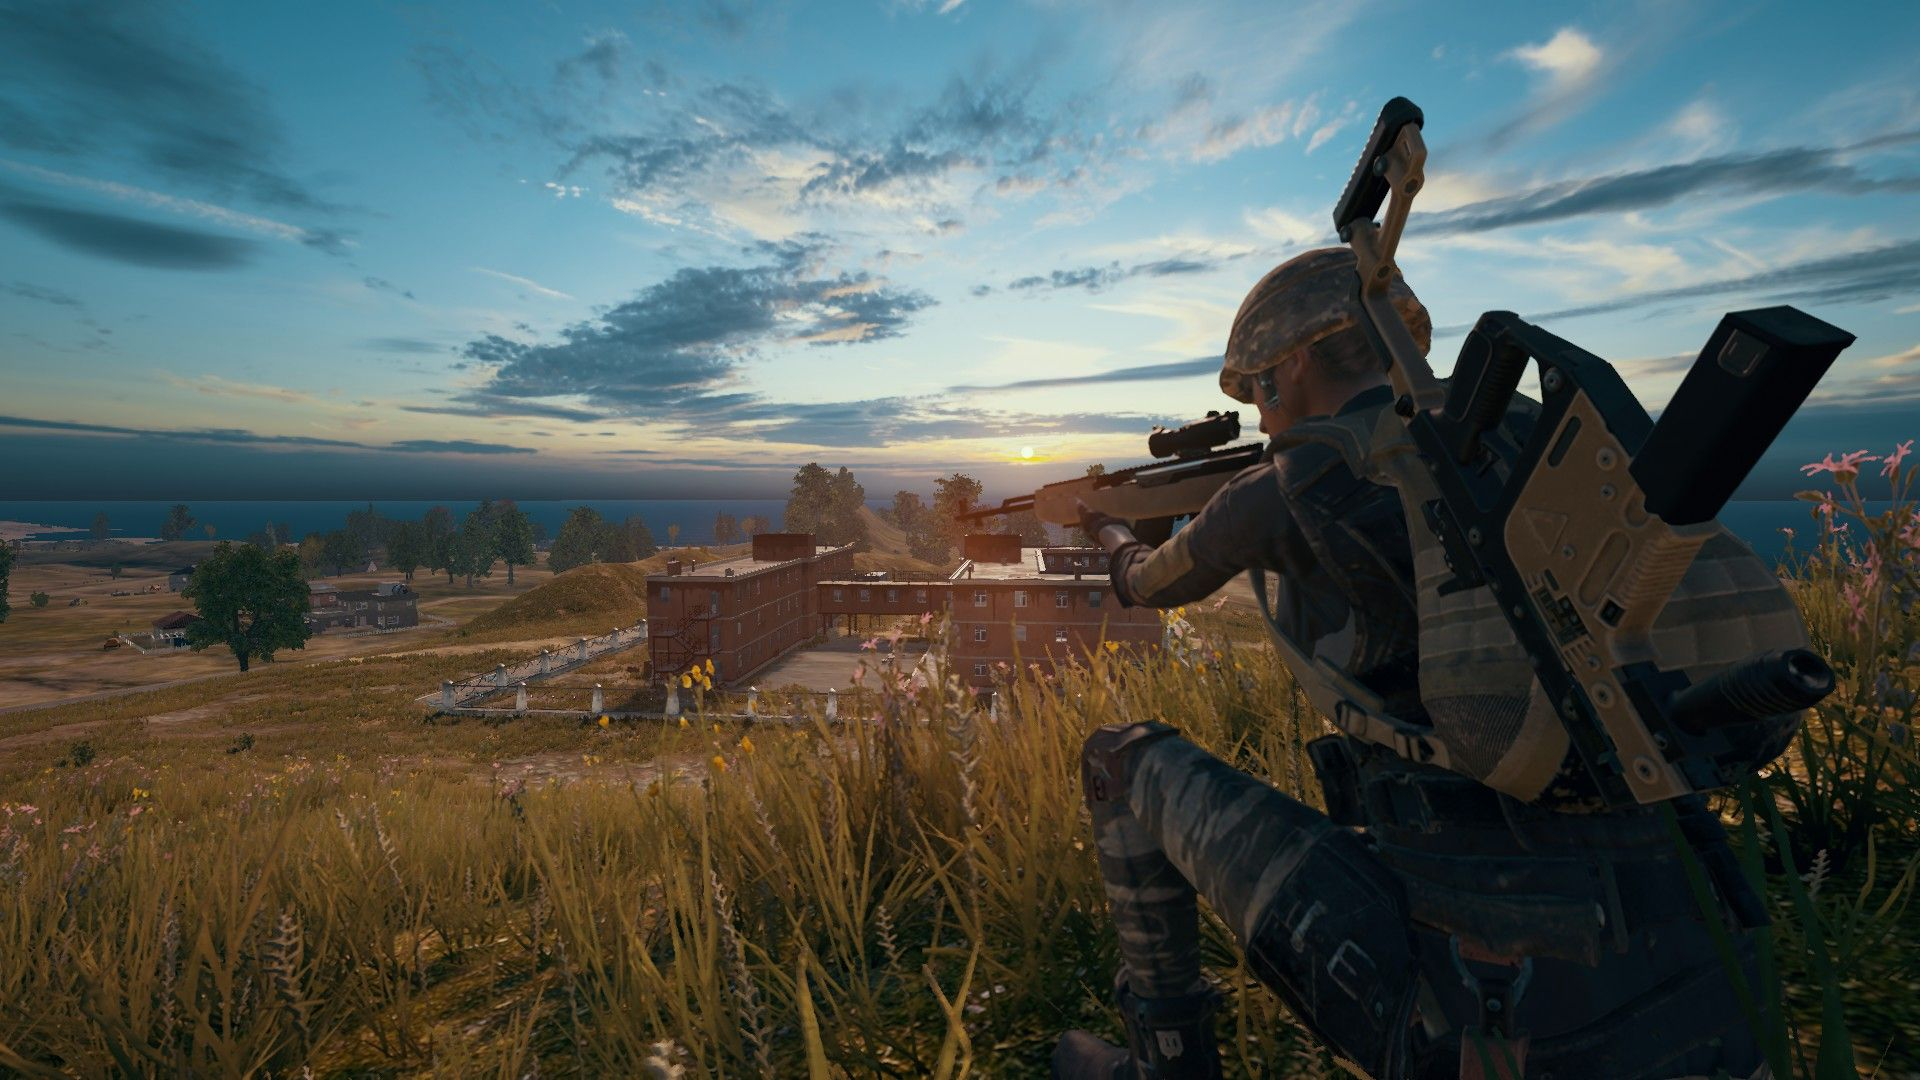 Pubg Wallpapers Hd 4k: 4K Ultra HD PlayerUnknown's Battlegrounds Wallpapers,PUBG